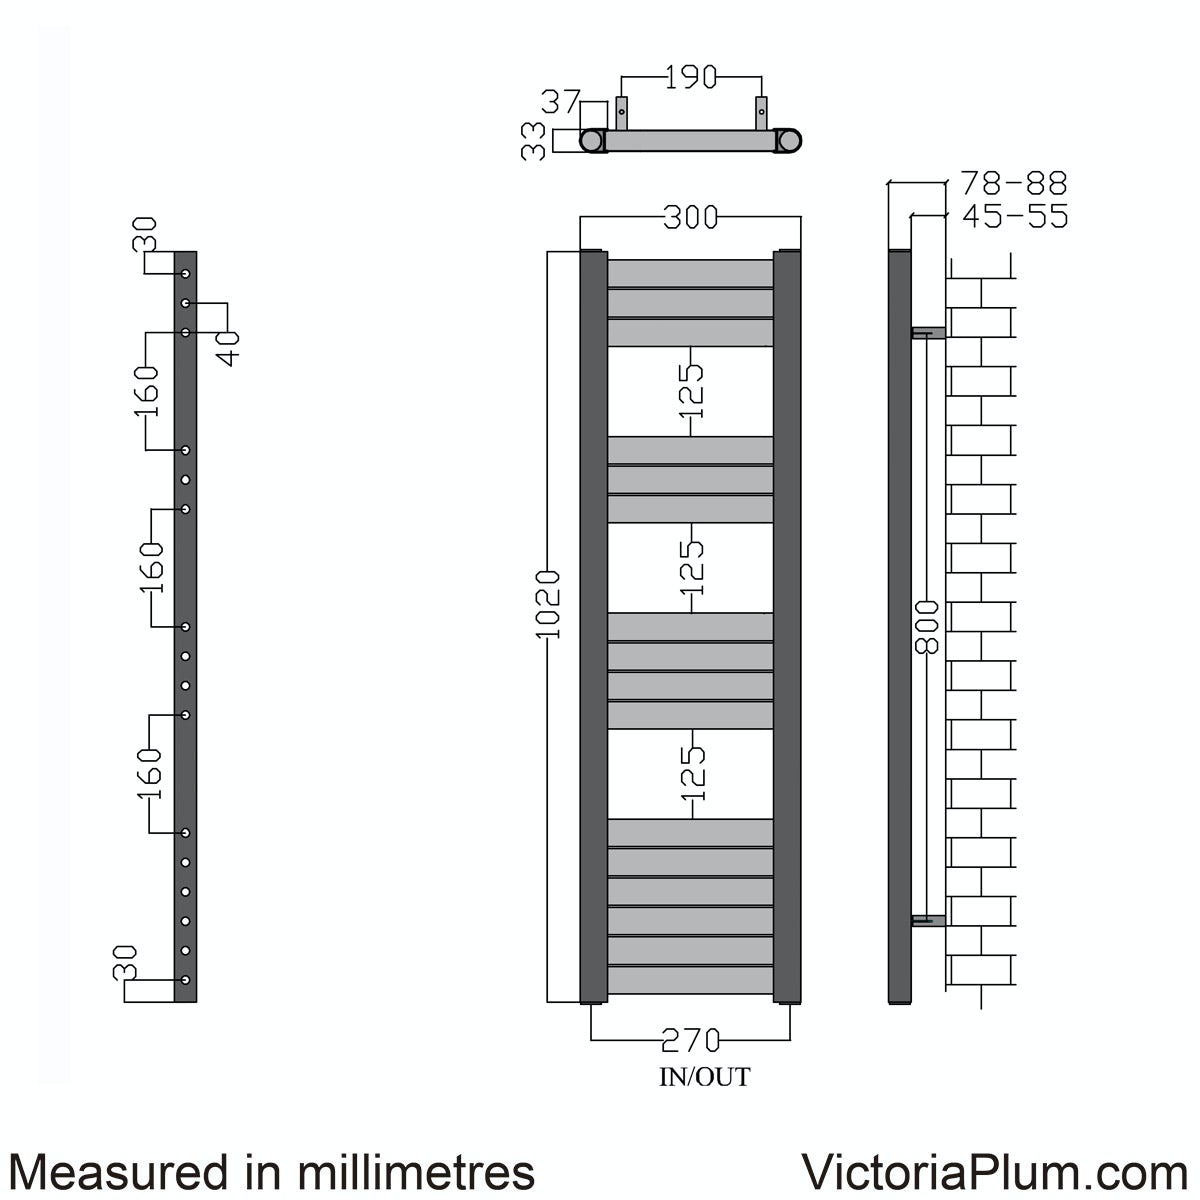 Dimensions for Mode Carter heated towel rail 1000 x 300